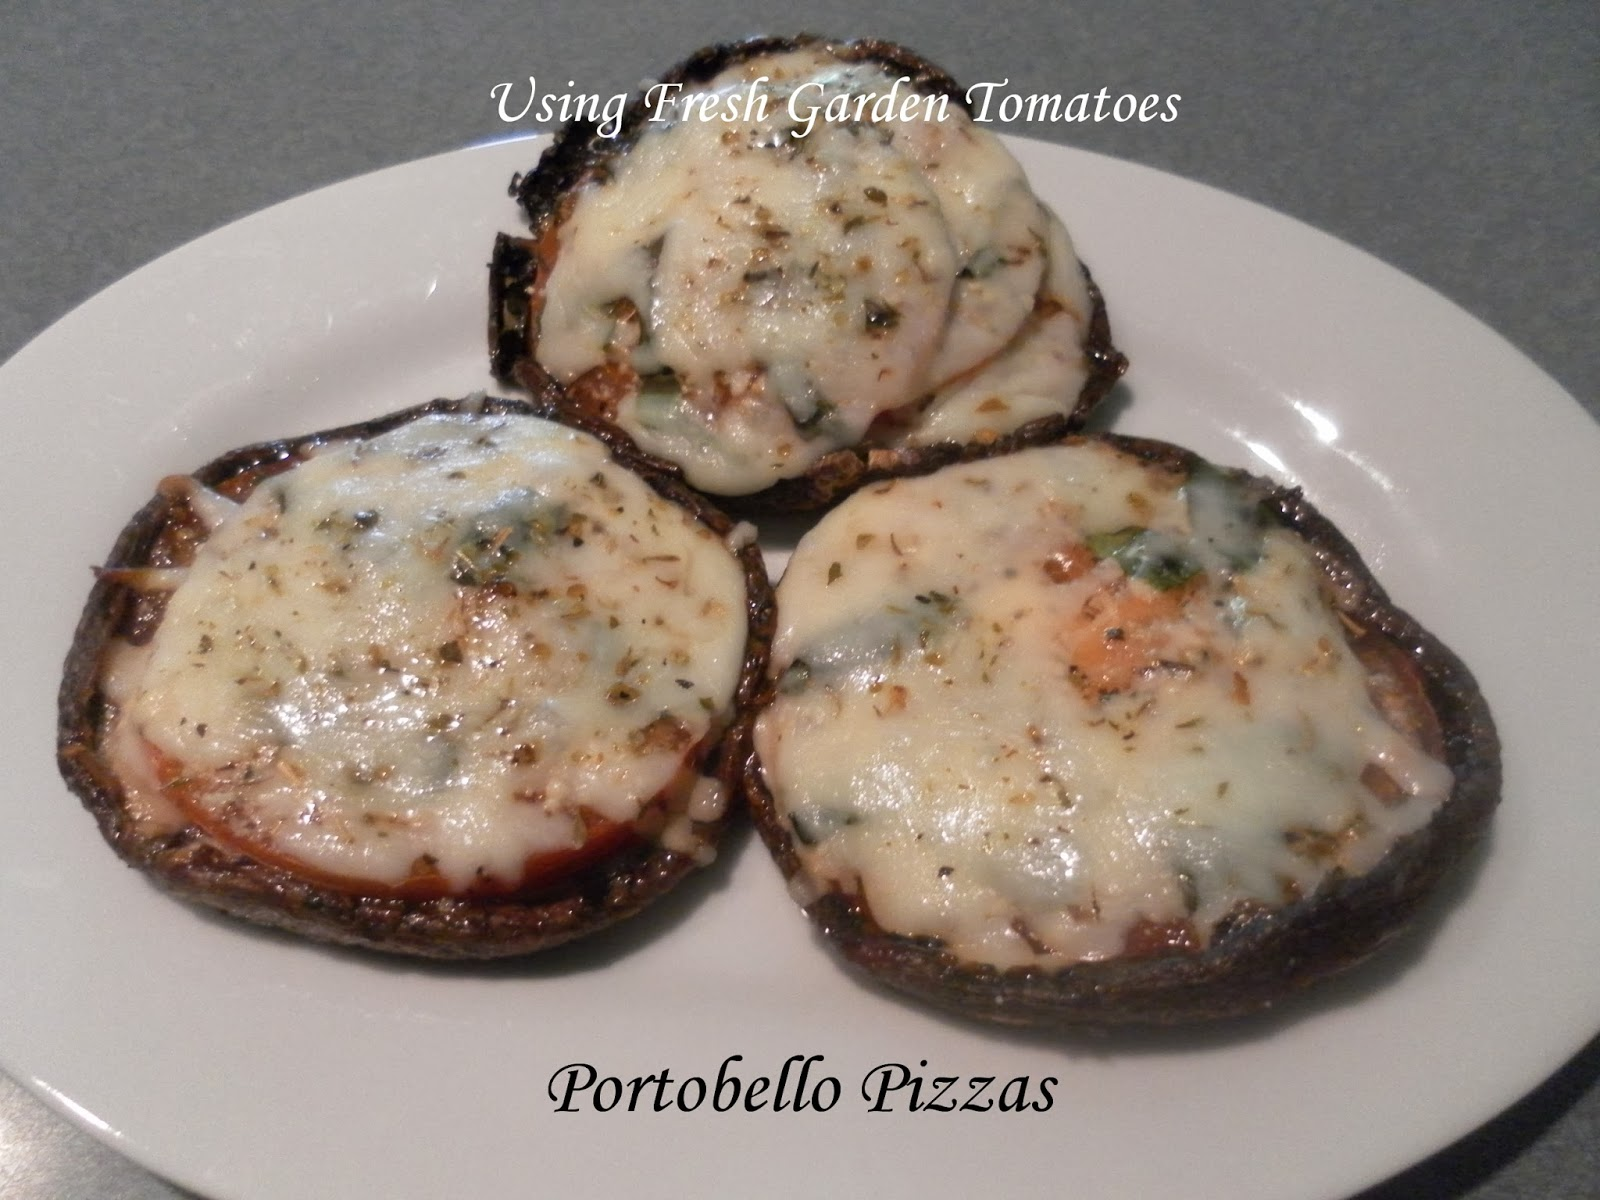 ... pizzas lahmahjoon tomato and stracciatella pizzas portobello pizzas